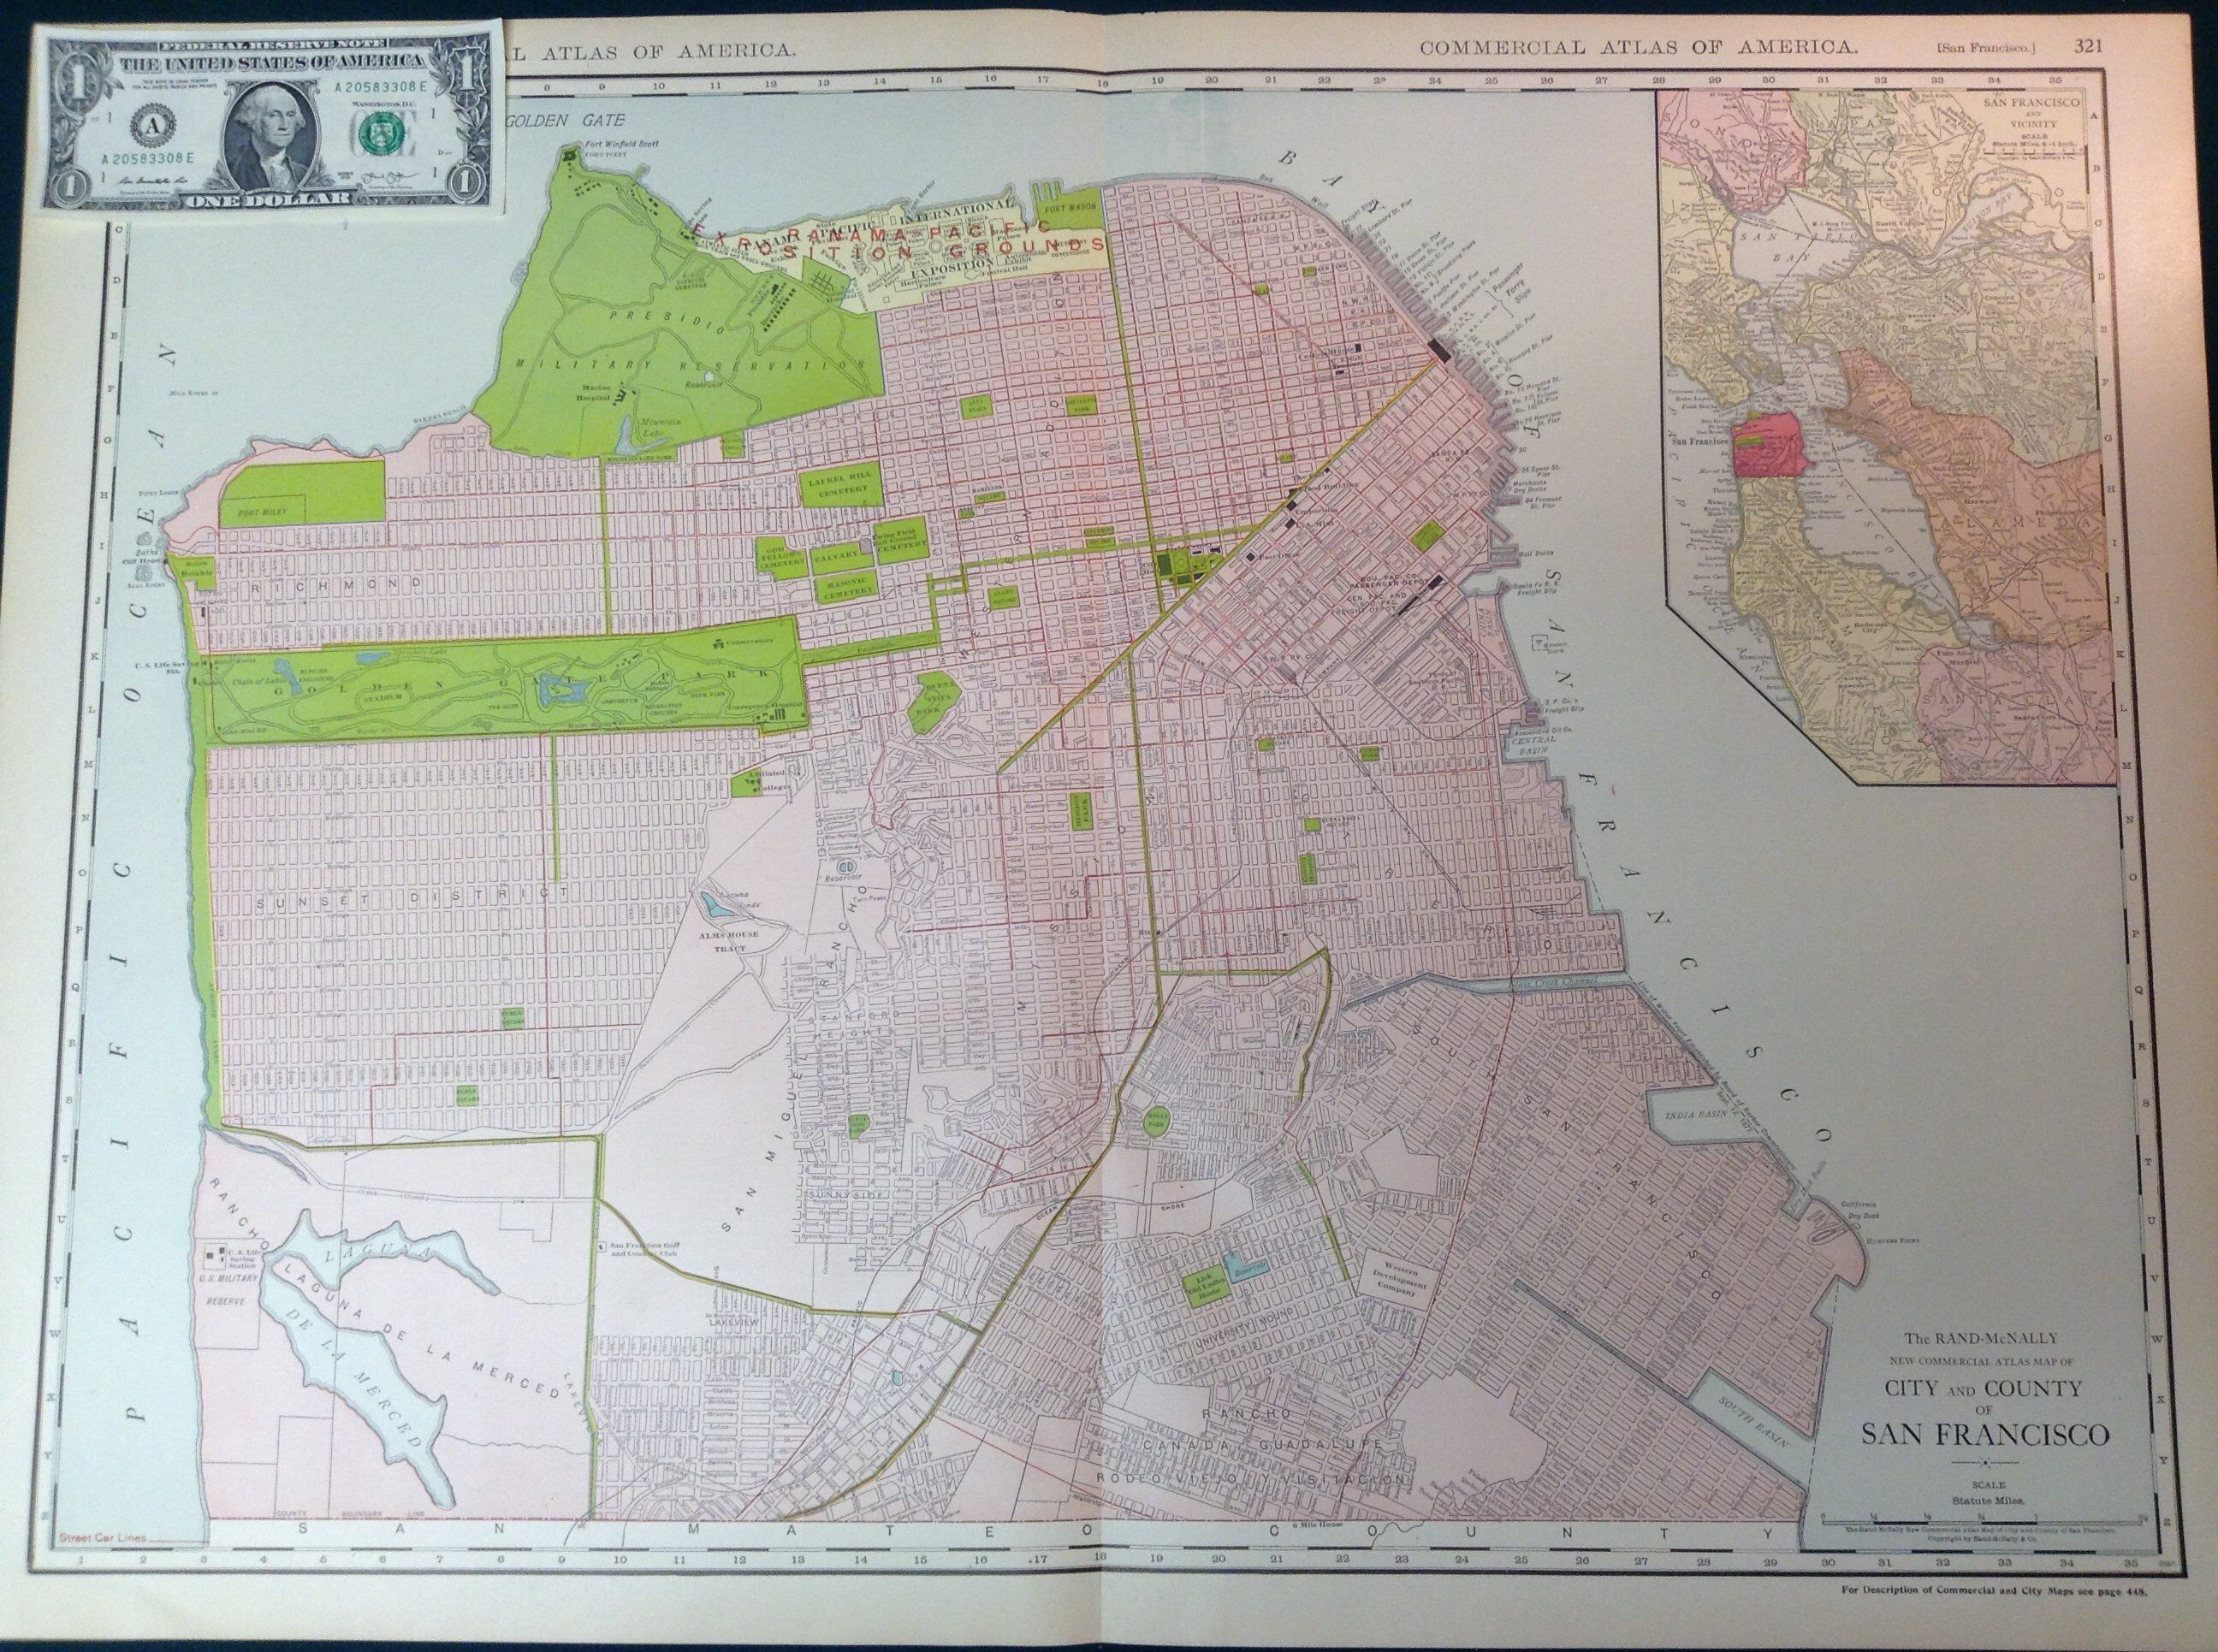 Pacific Heights San Francisco Map.Excited To Share This Item From My Etsy Shop 1917 Xl Antique Map